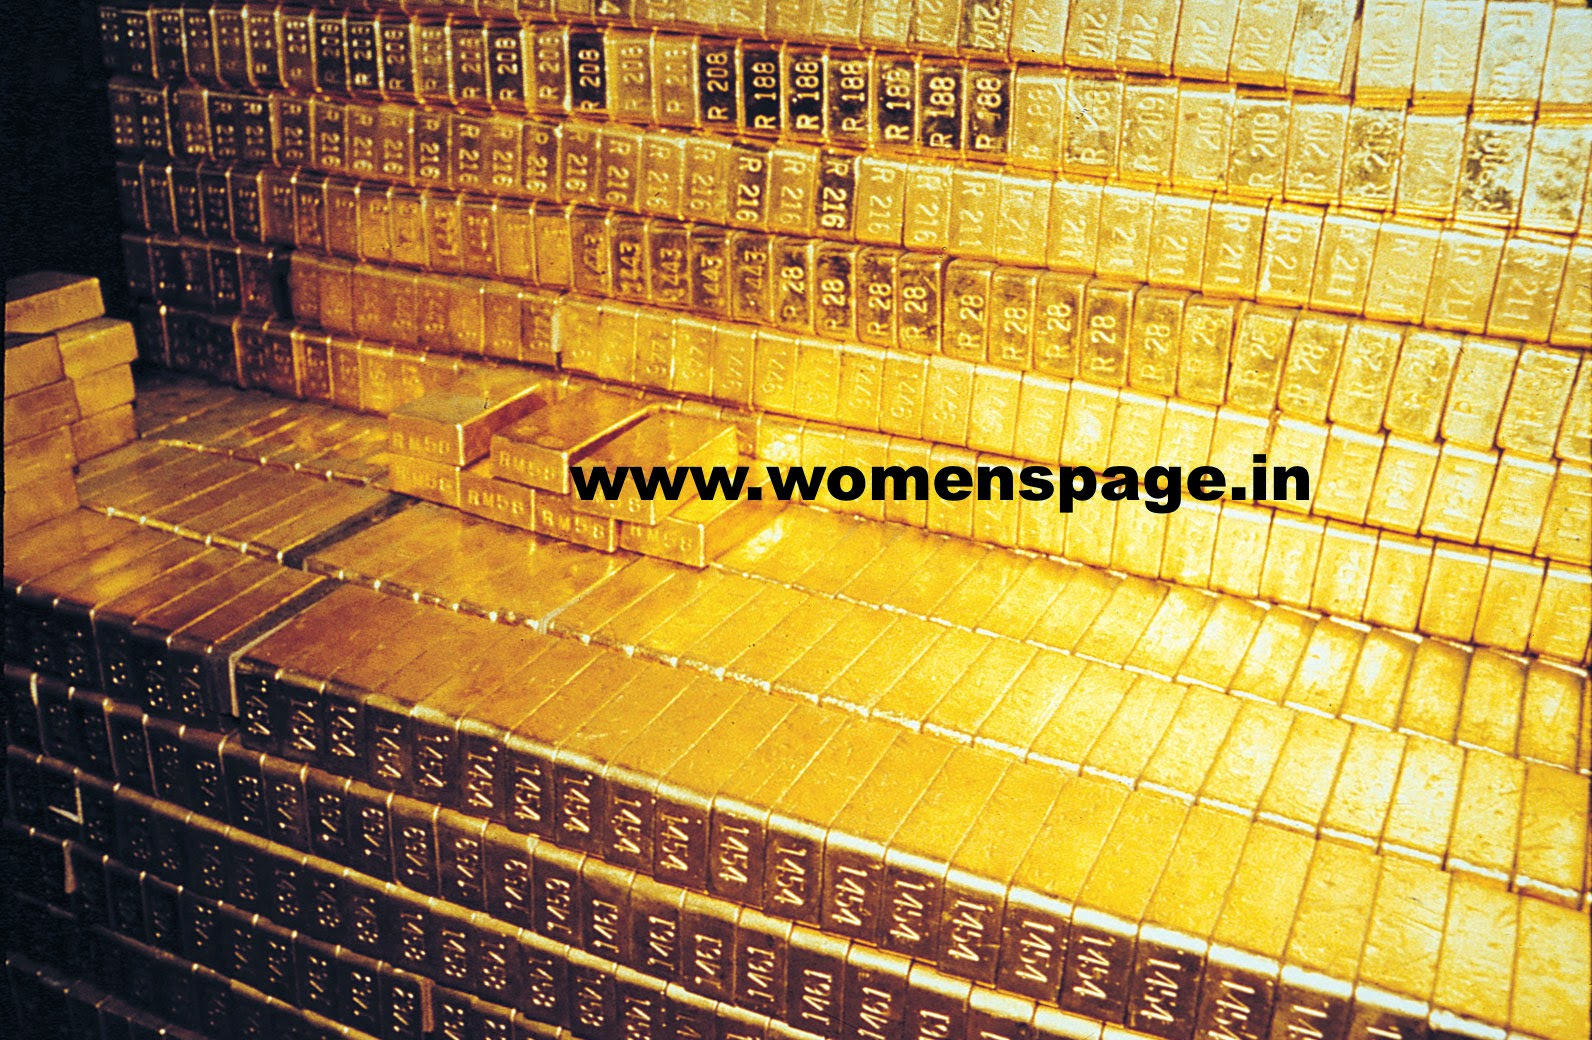 Gold Rate Per Gram Today In India Price Womenspage Coupons News Epapers Latest